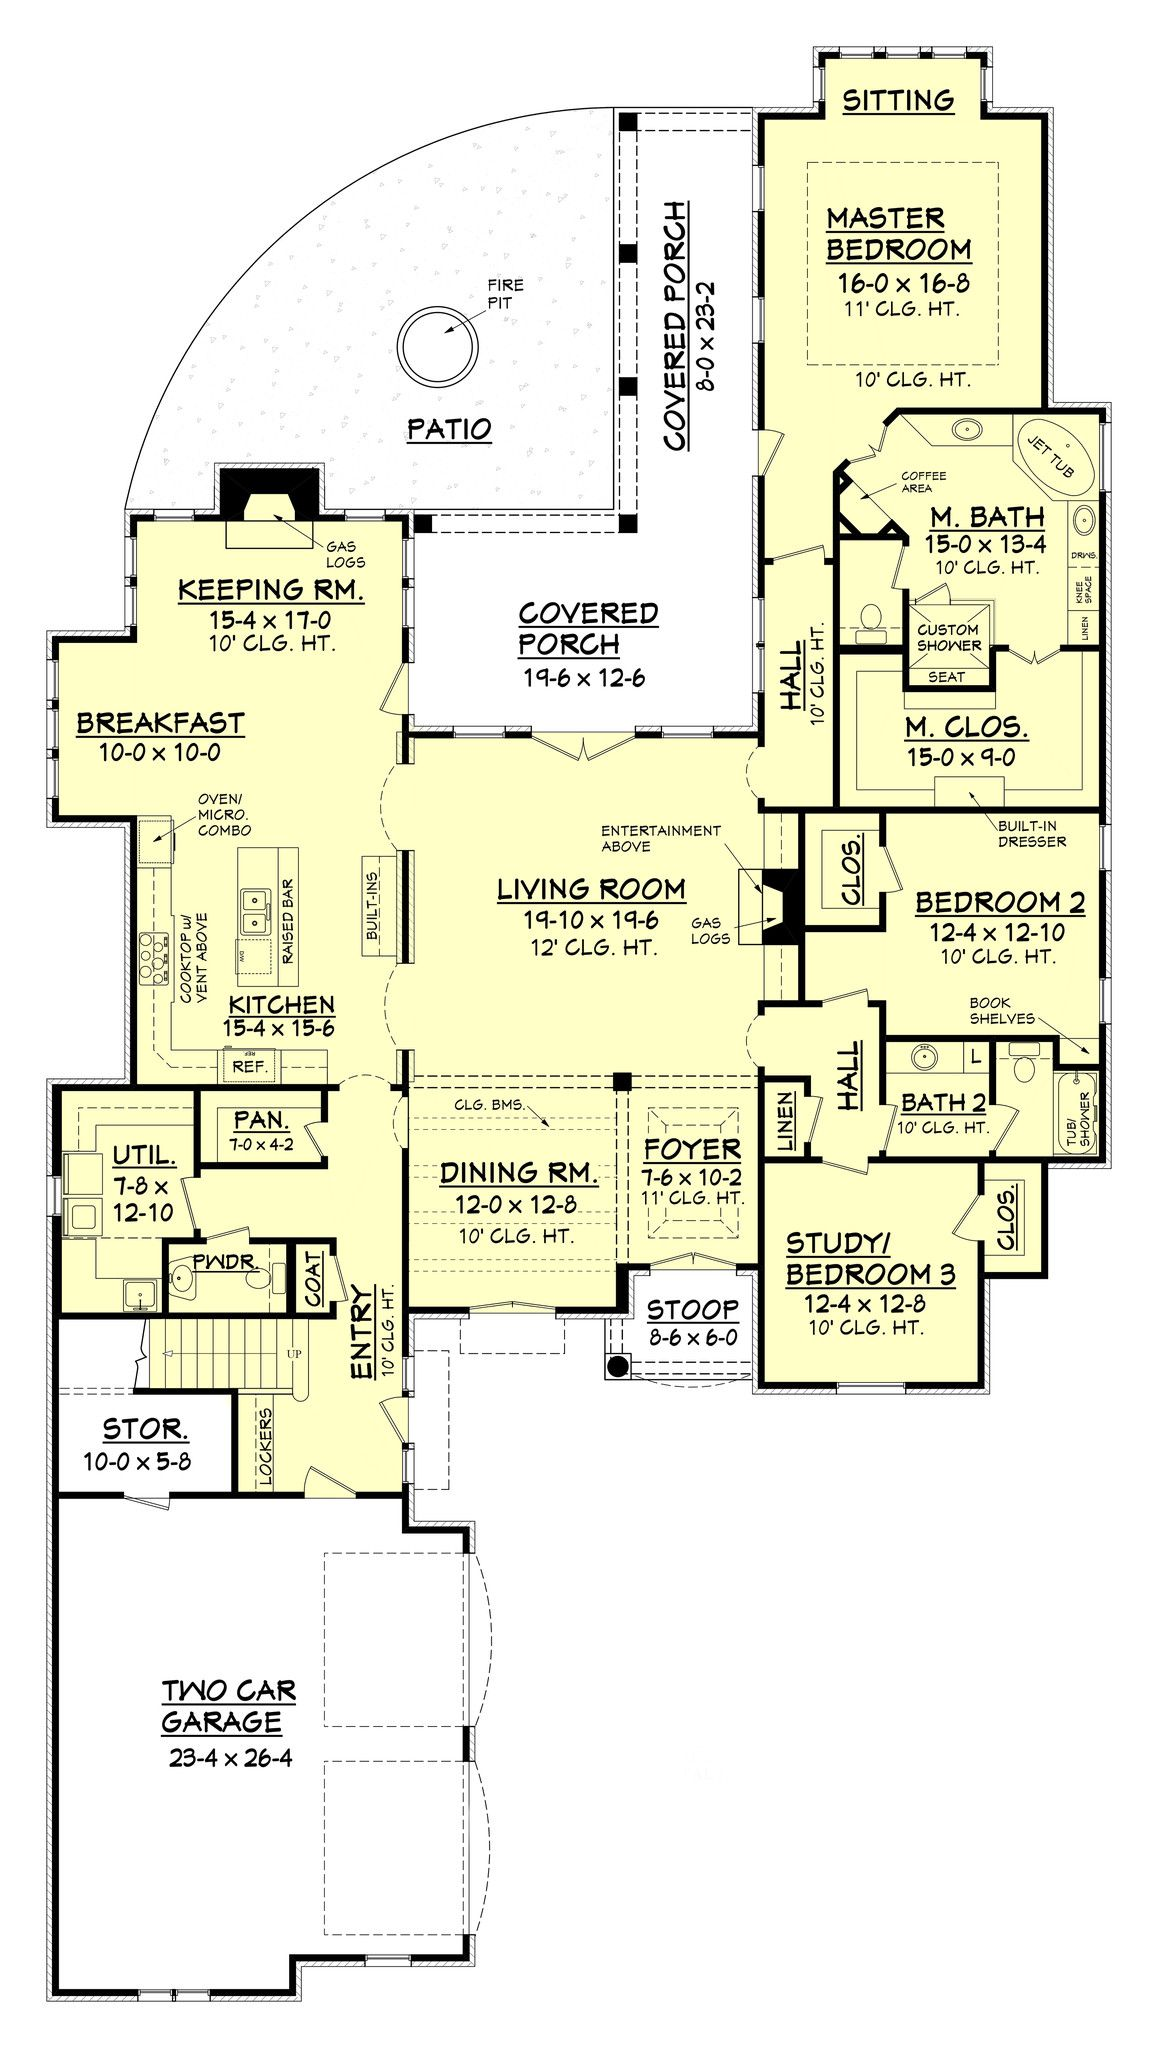 43 Best Ideas For House Plans Luxury 3000 Sq Ft House Plans One Story New House Plans House Floor Plans